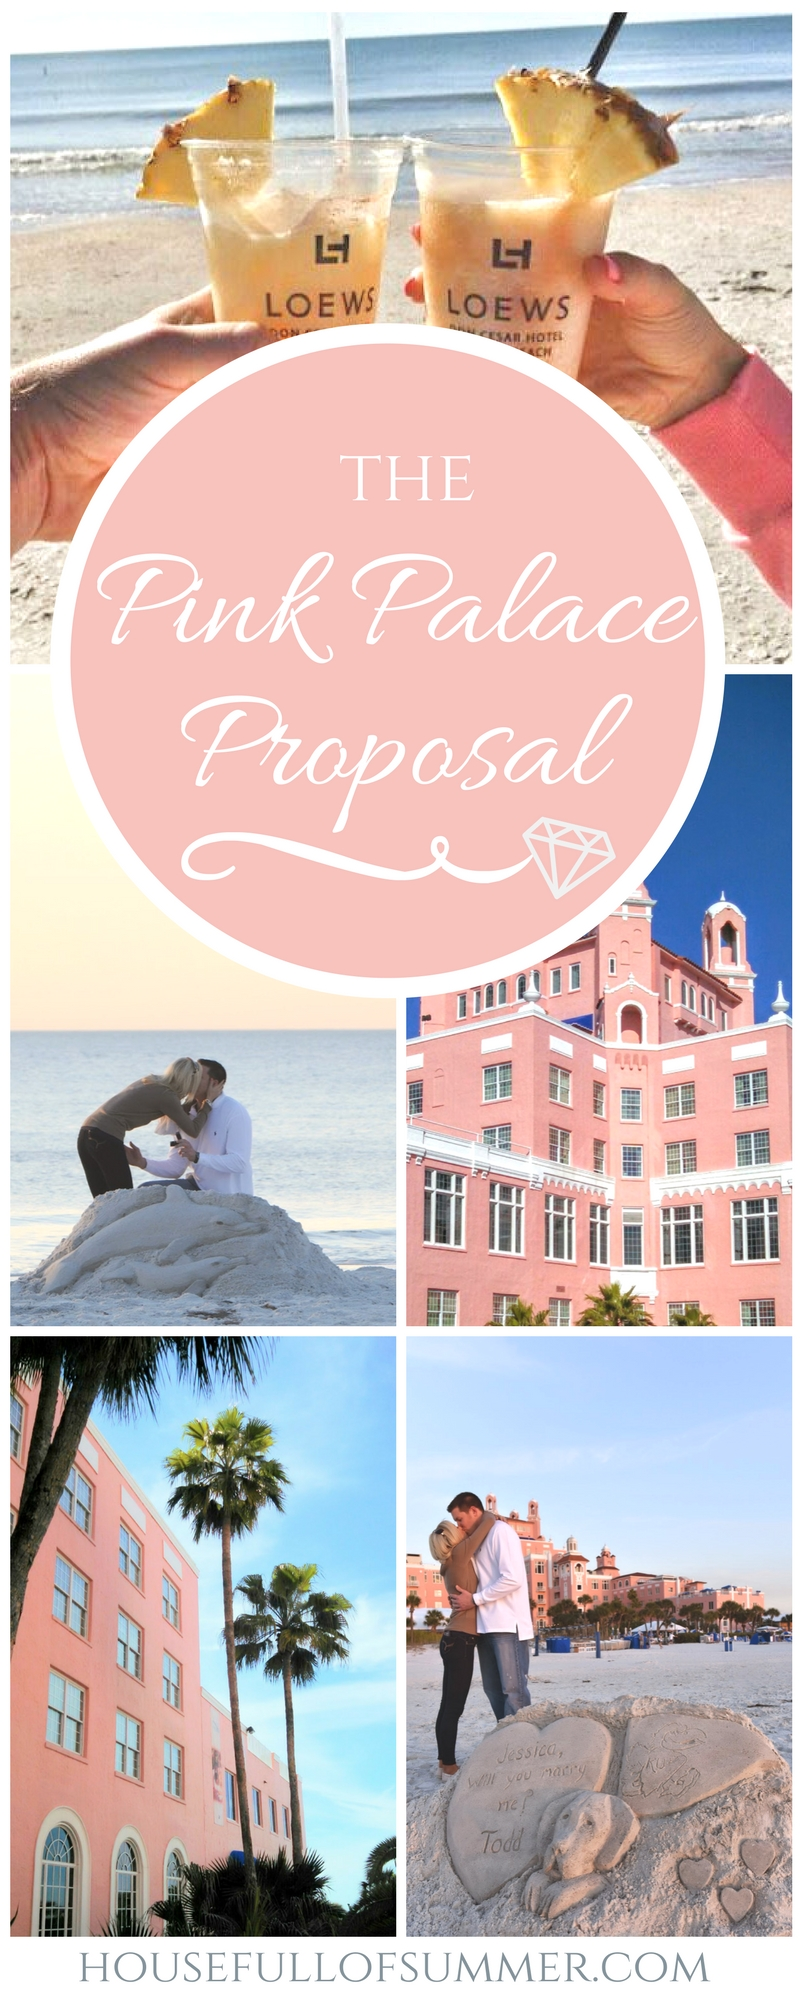 The Pink Palace Proposal | House Full of Summer - A romantic sunset beach proposal at the Don CeSar on St. Pete Beach, Florida,  sand sculpture proposal, beach engagement, sunset proposal on the beach, secret photographer, how he asked, best wedding proposal, creative proposal idea